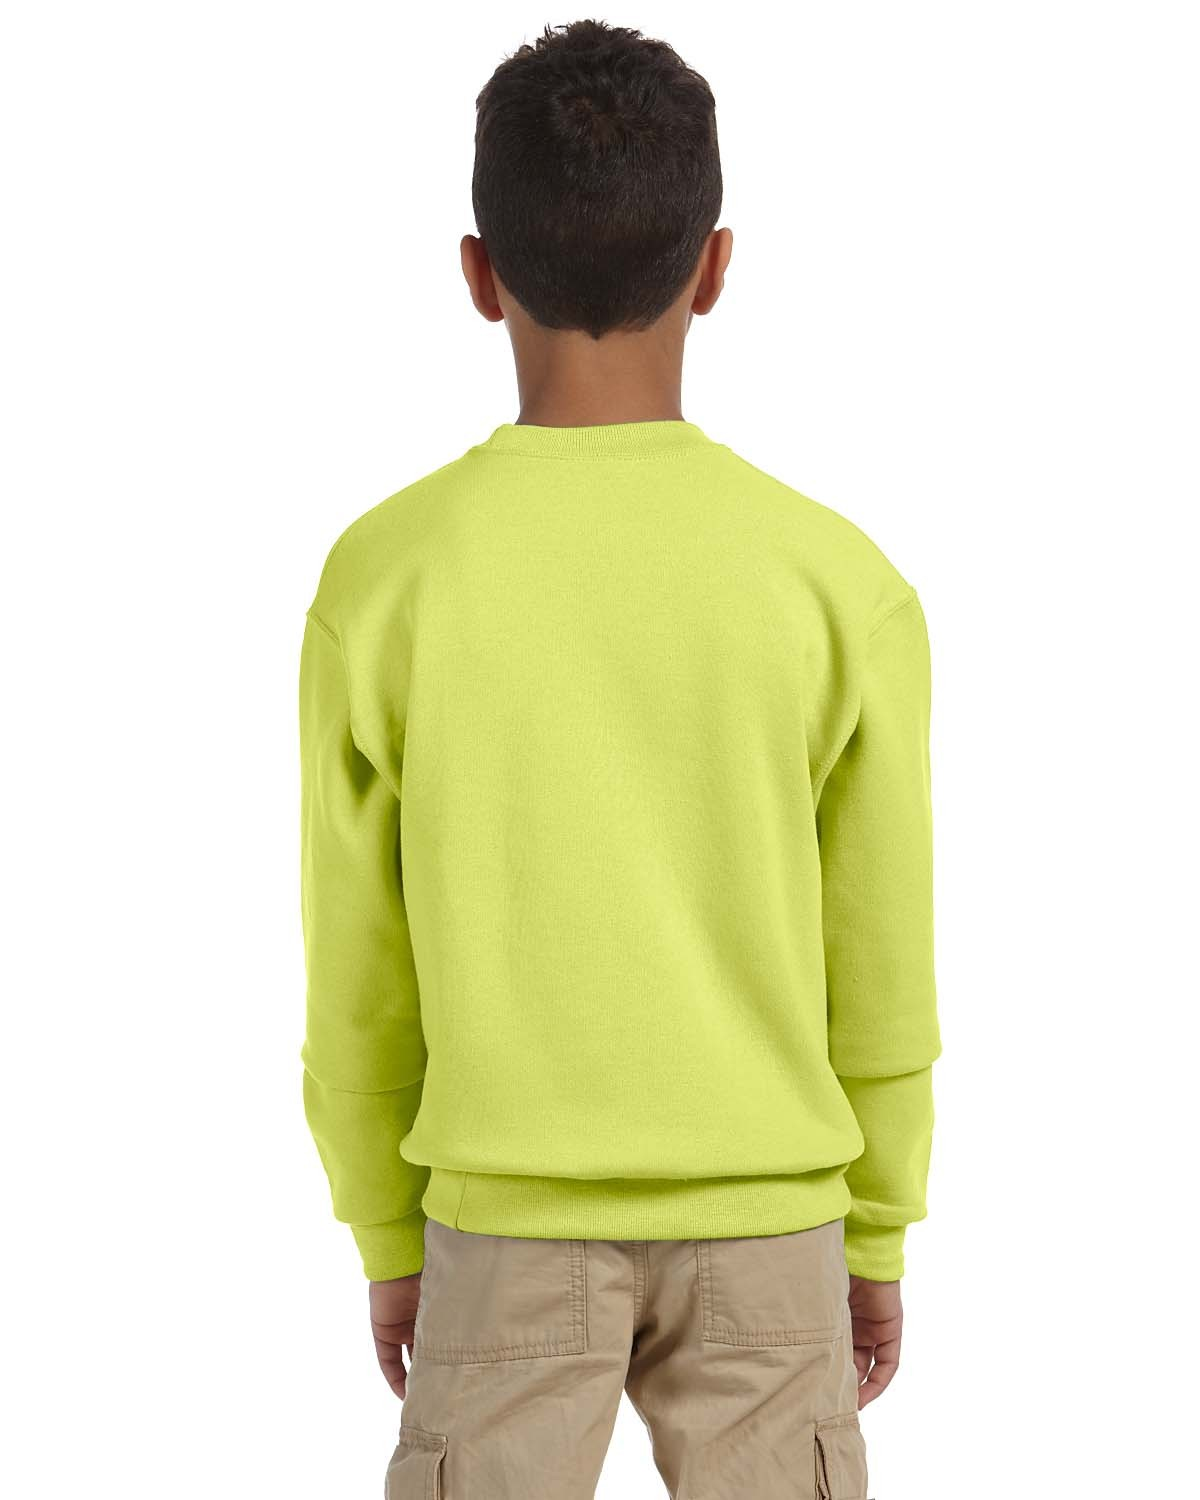 562B Jerzees SAFETY GREEN